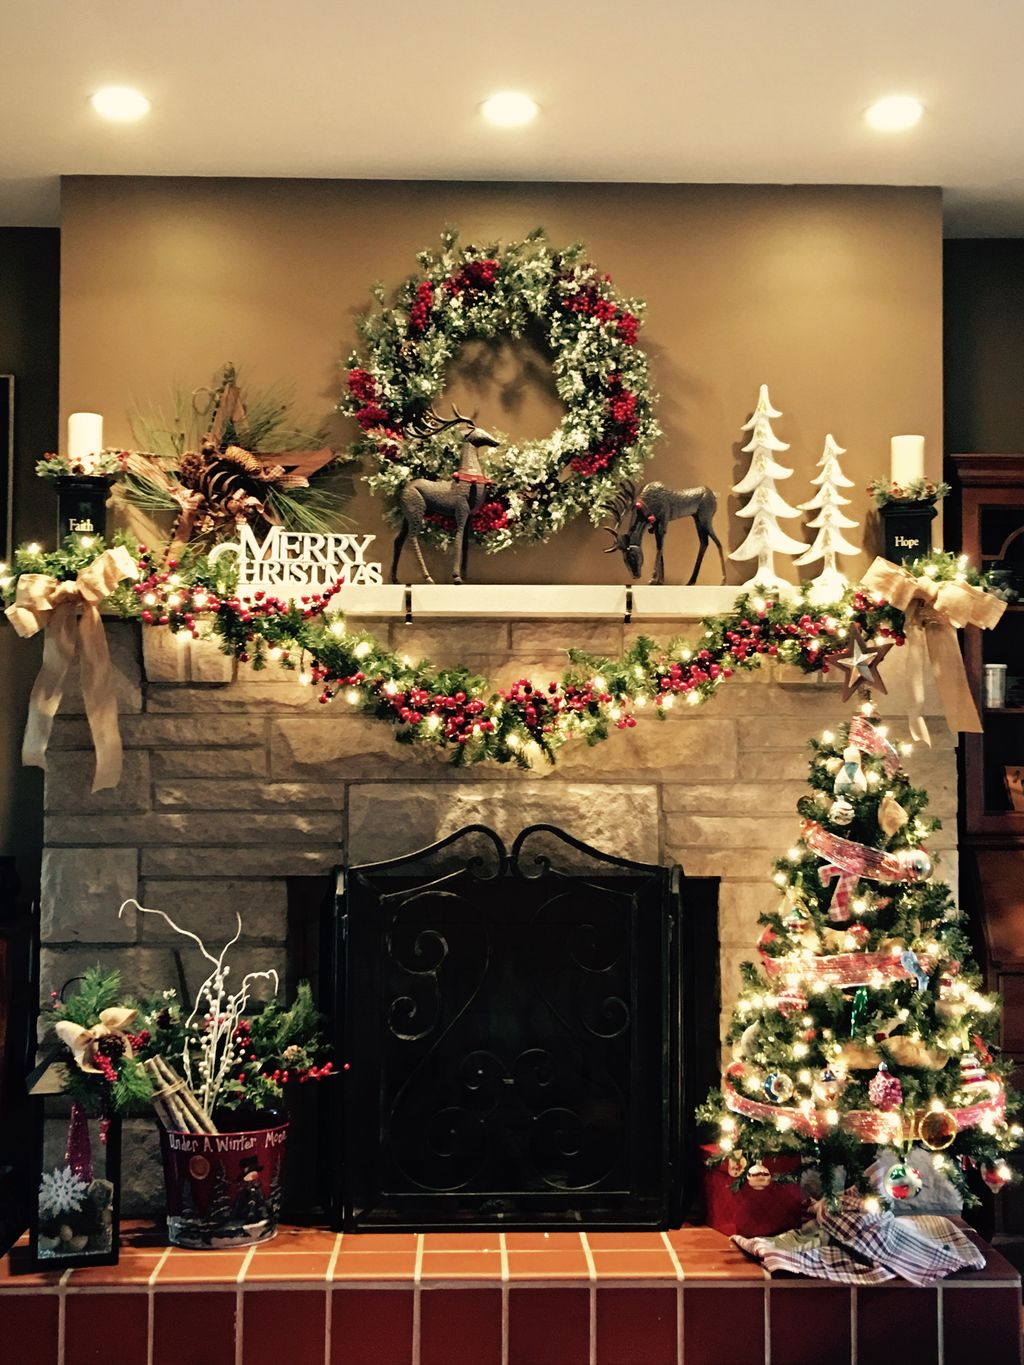 Inspiring Rustic Christmas Fireplace Ideas To Makes Your Home Warmer 27